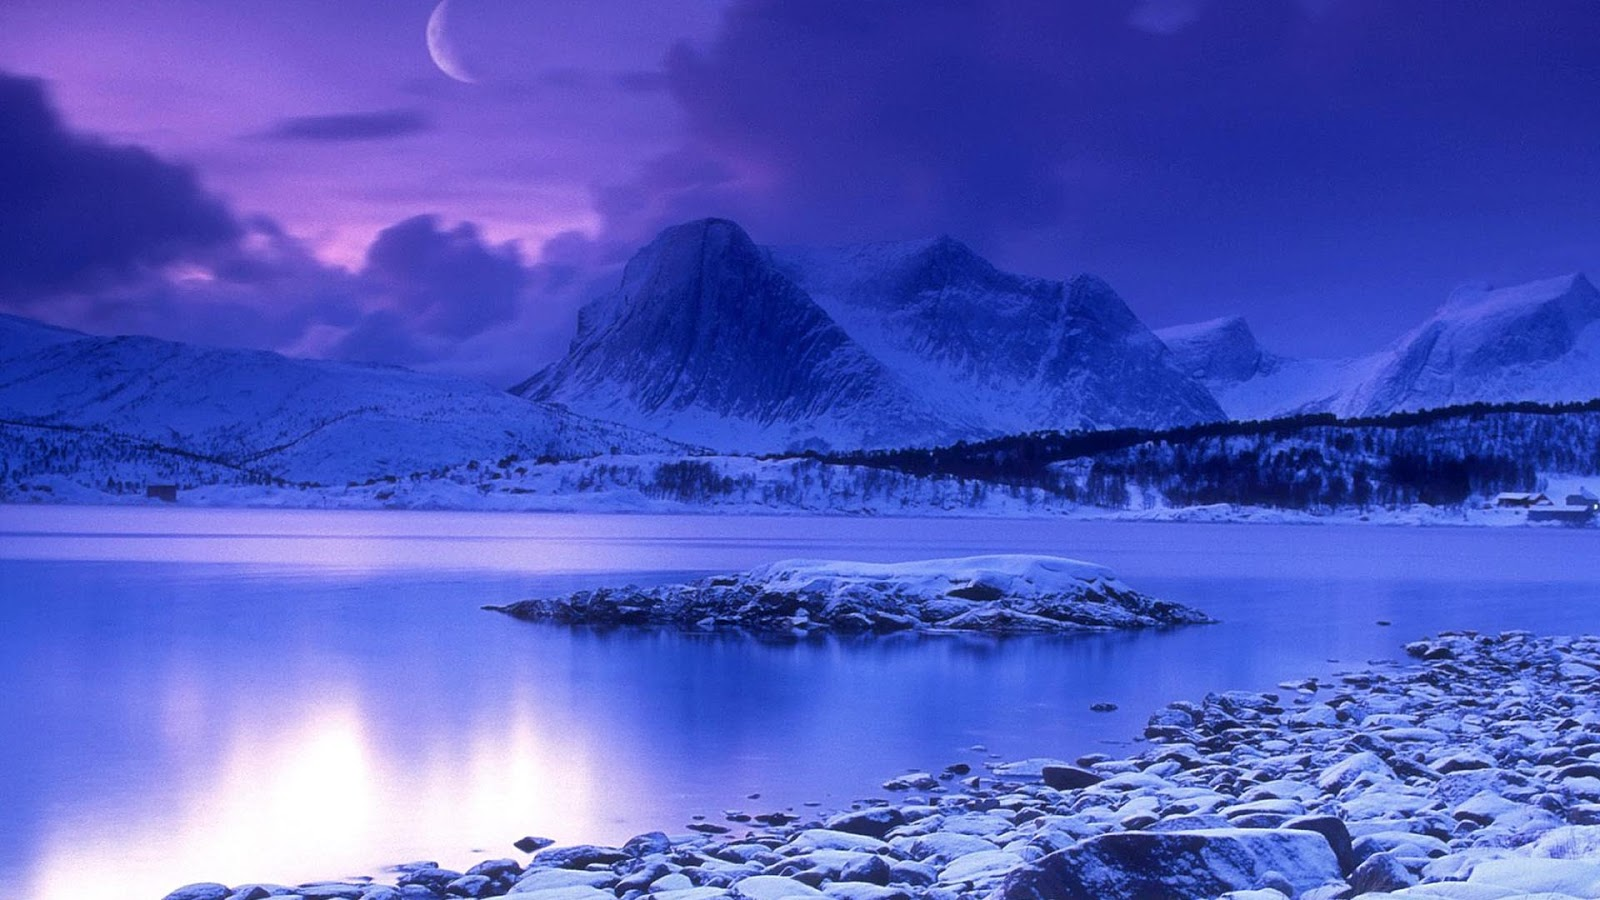 Norway Wallpapers 1080p | HD Wallpapers (High Definition) | Free Background